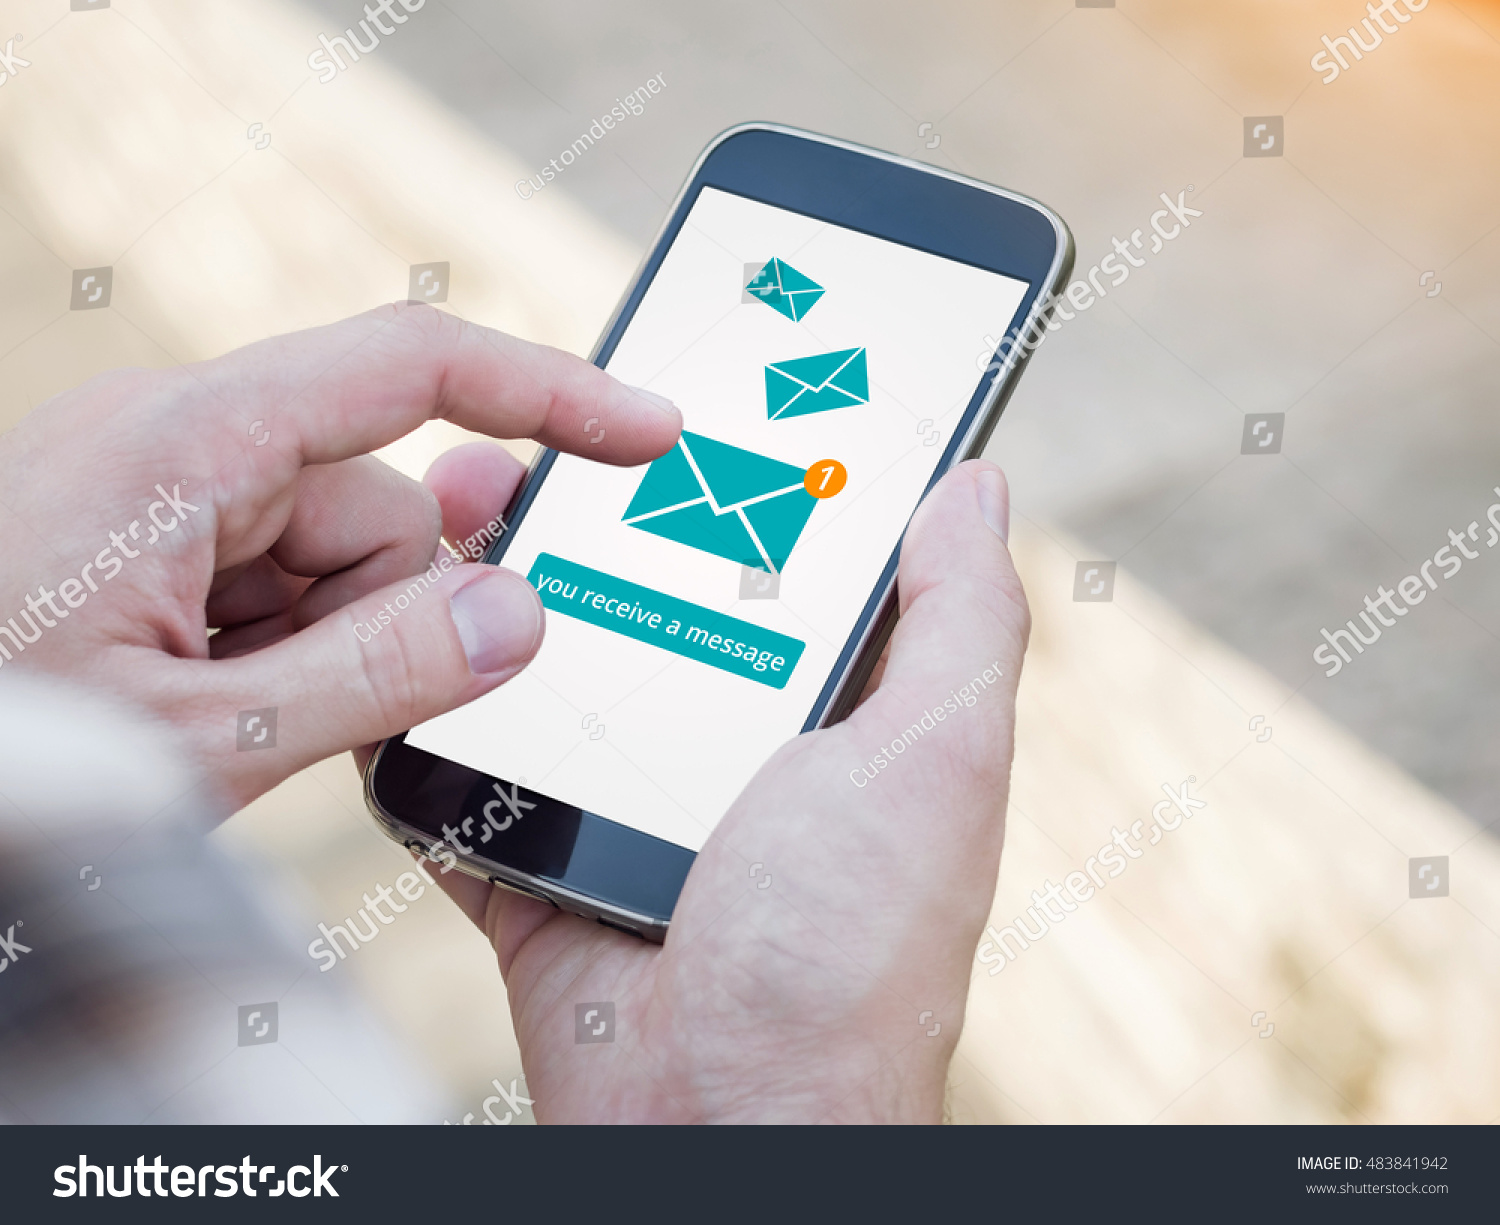 Email app on smartphone screen You receive a message New message is received Man's Hand holding a smartphone